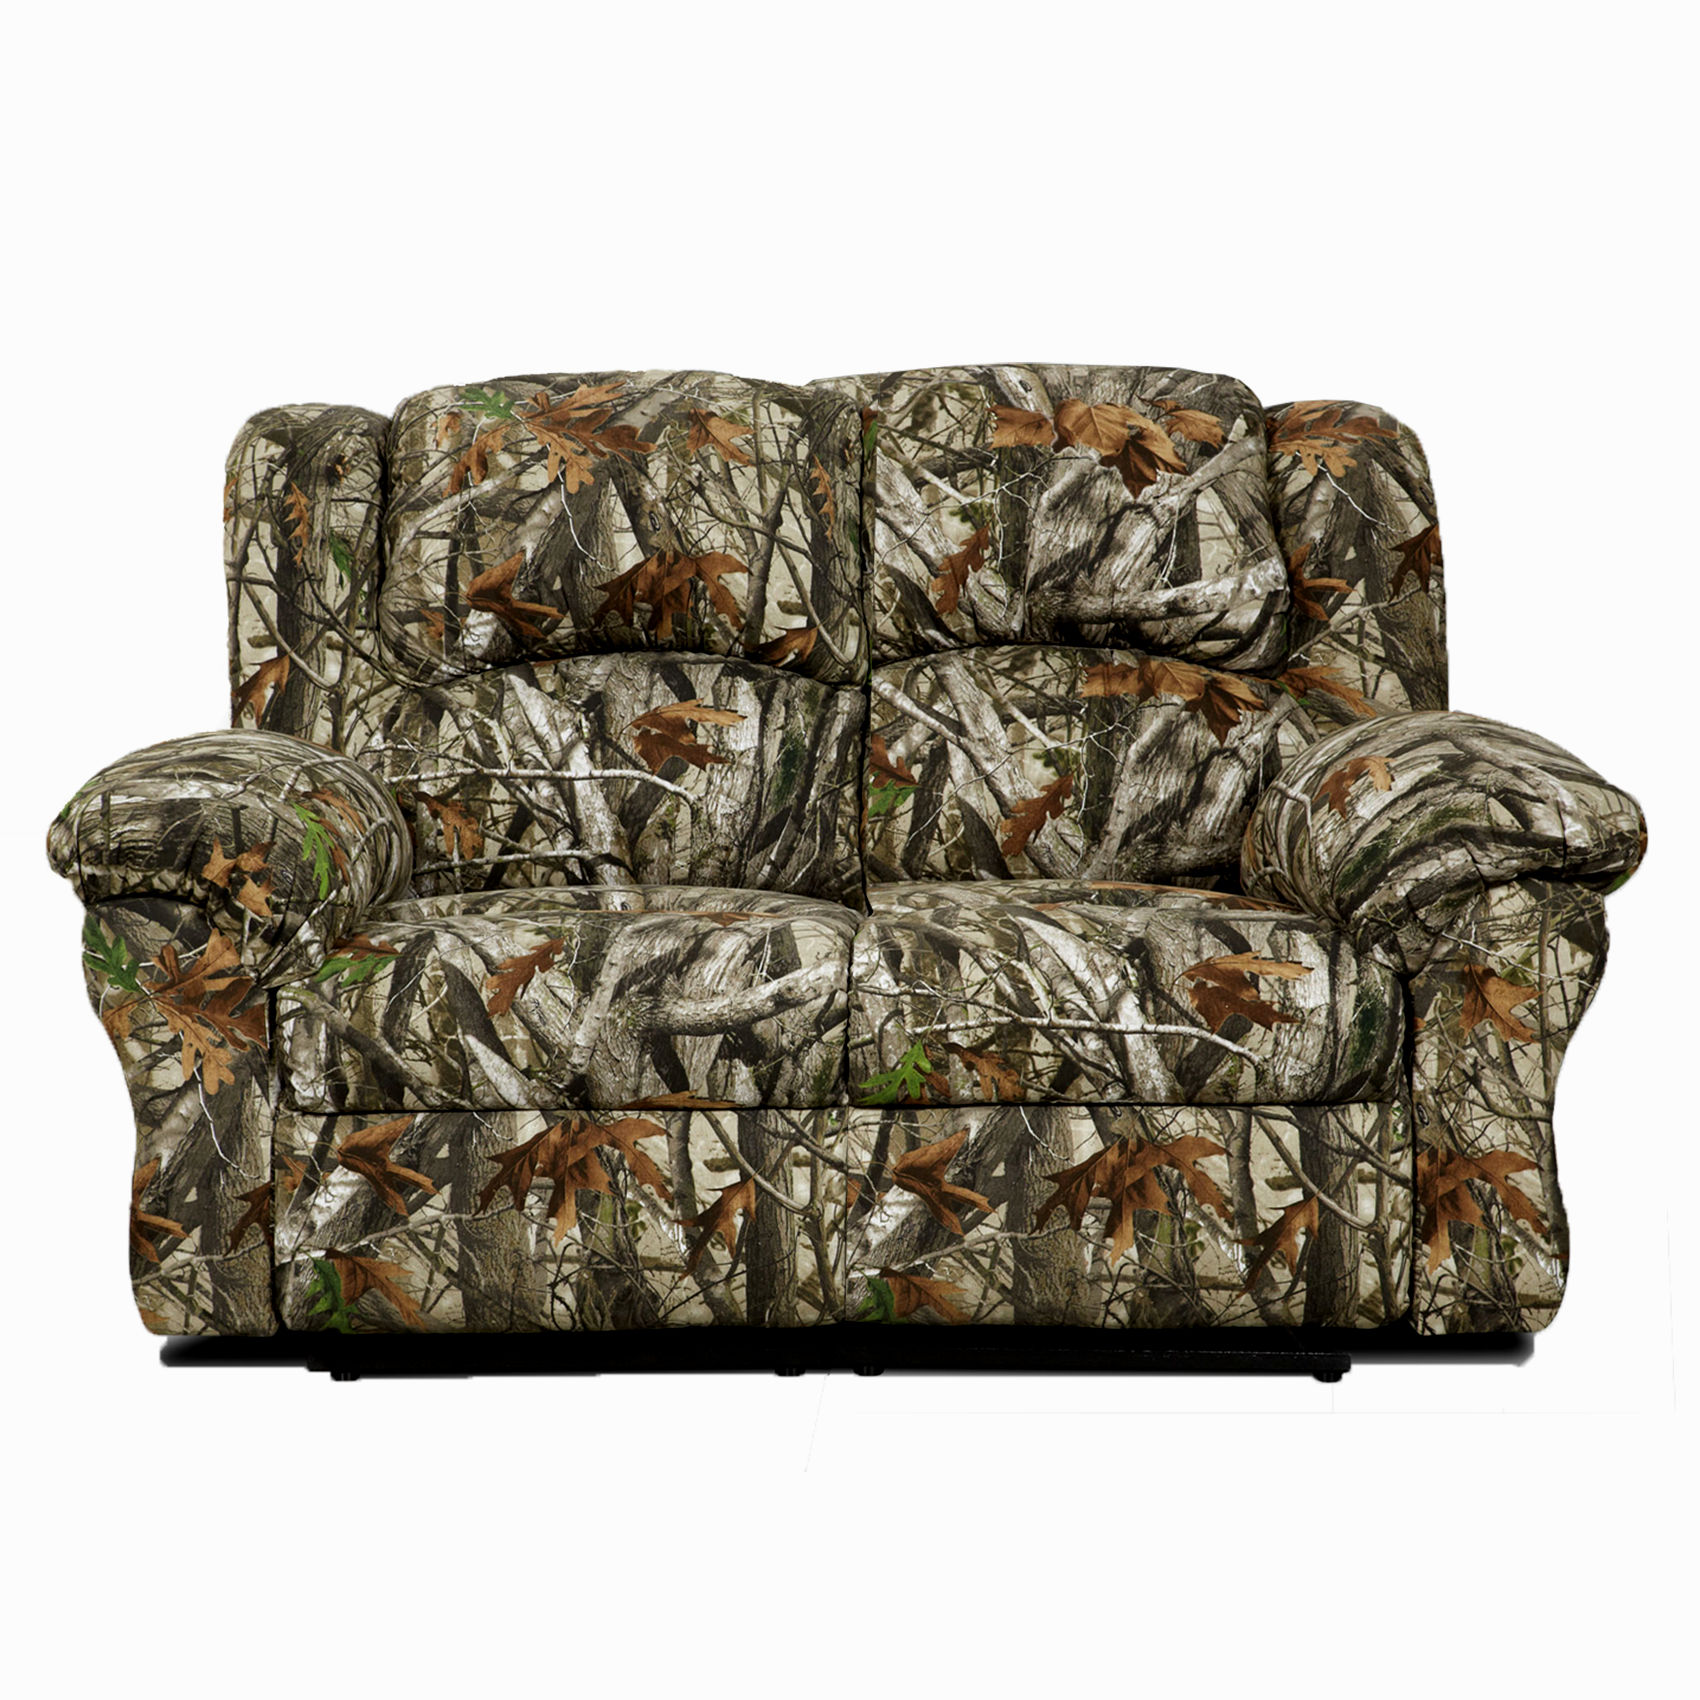 modern camo sofa cover concept-Beautiful Camo sofa Cover Portrait